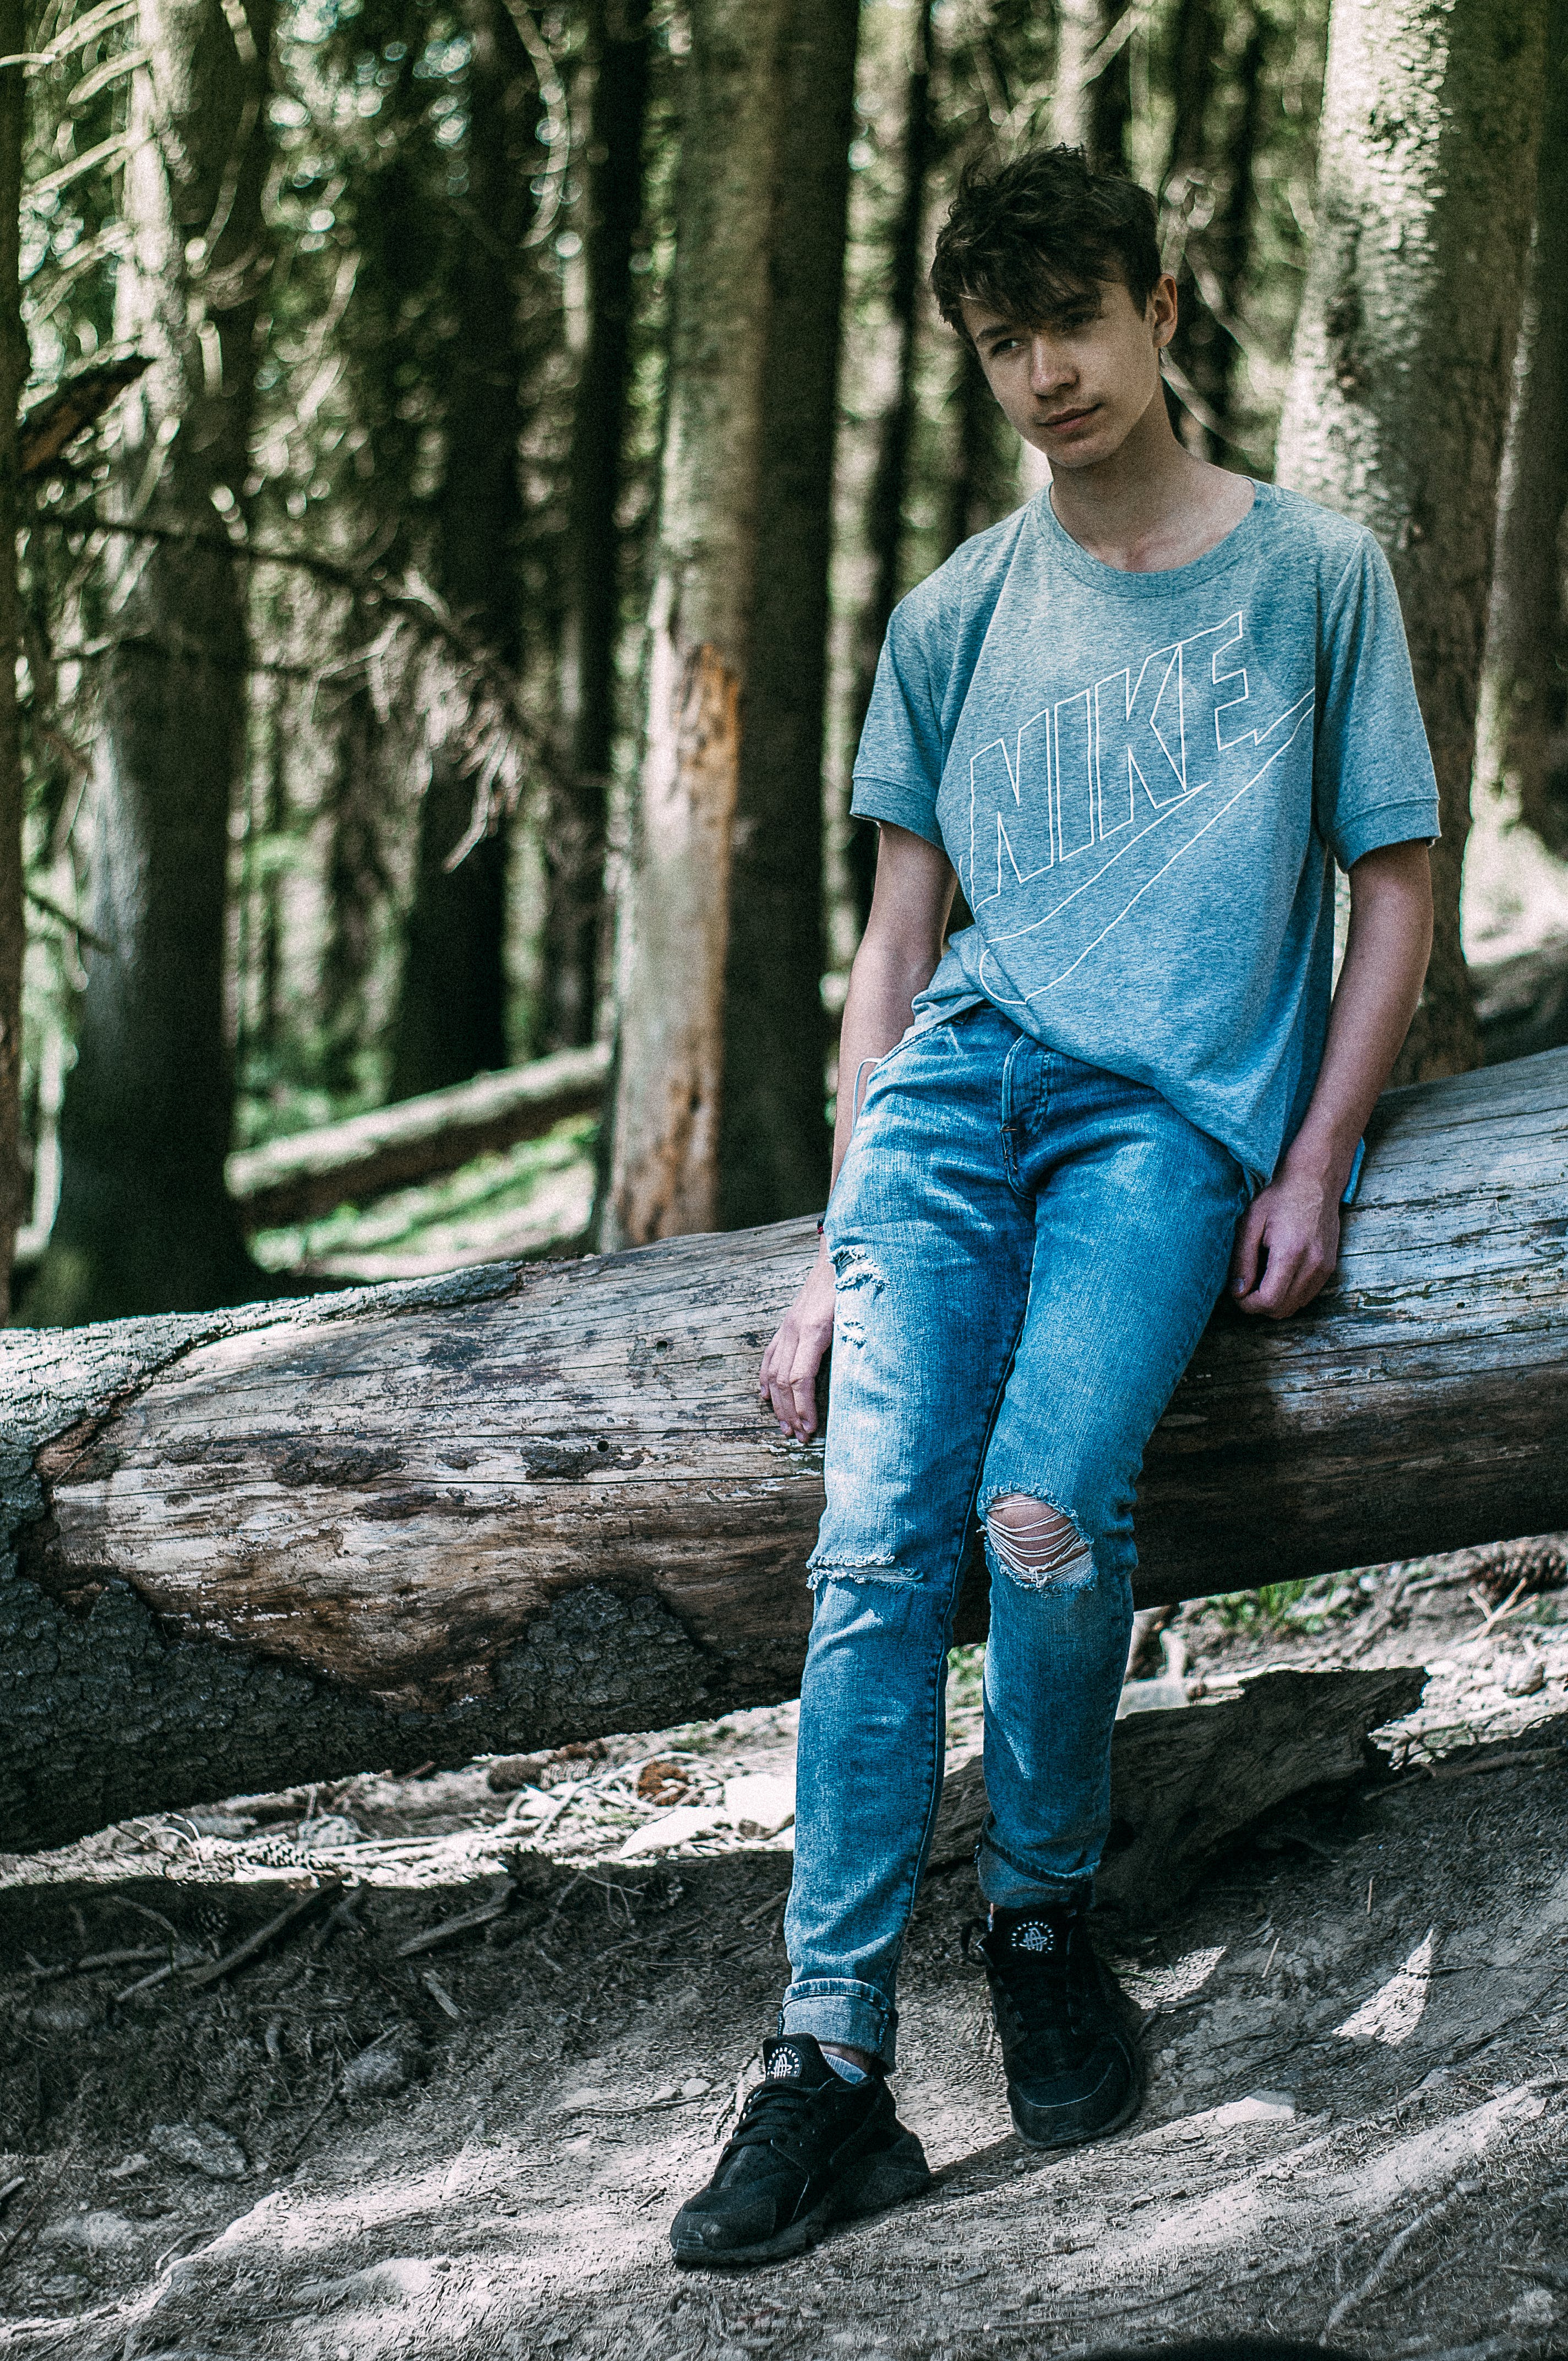 Free stock photo of blue jeans, boots, fallen tree, hairstyle